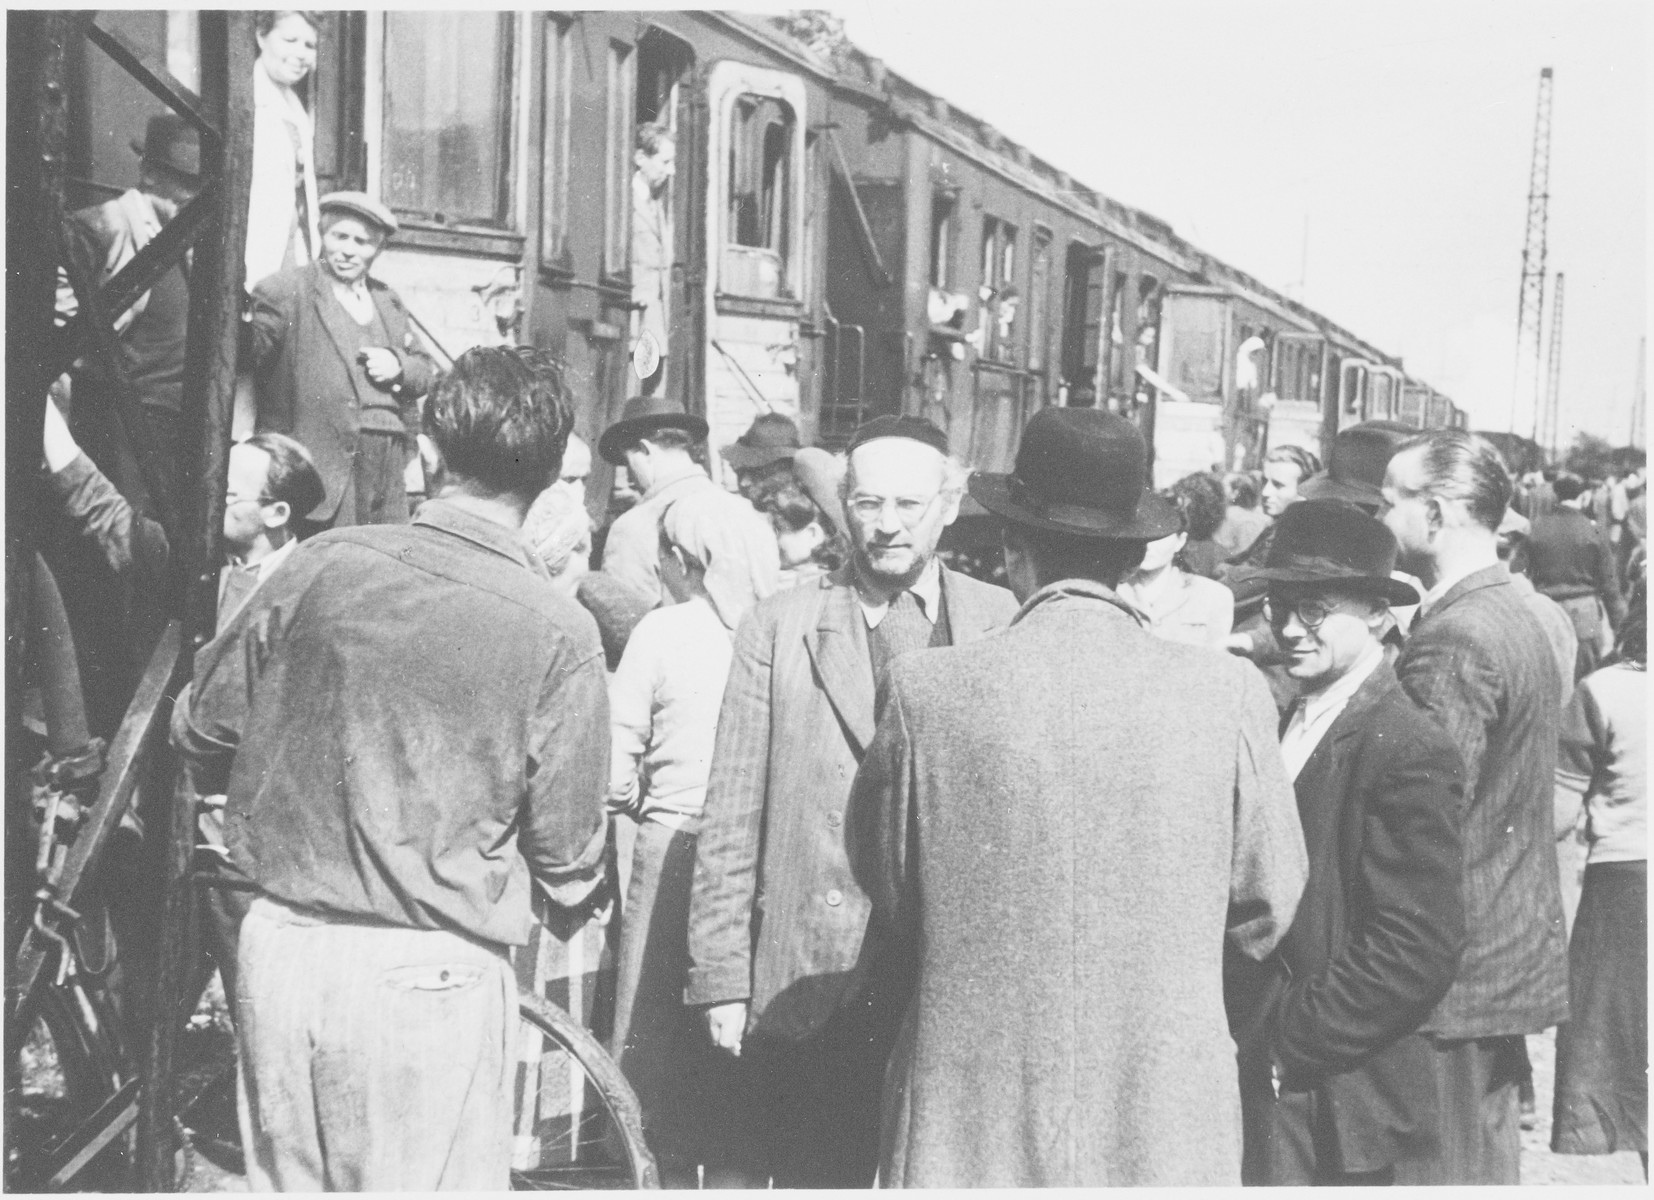 Jewish displaced persons board and exit a train in a busy station in Germany.